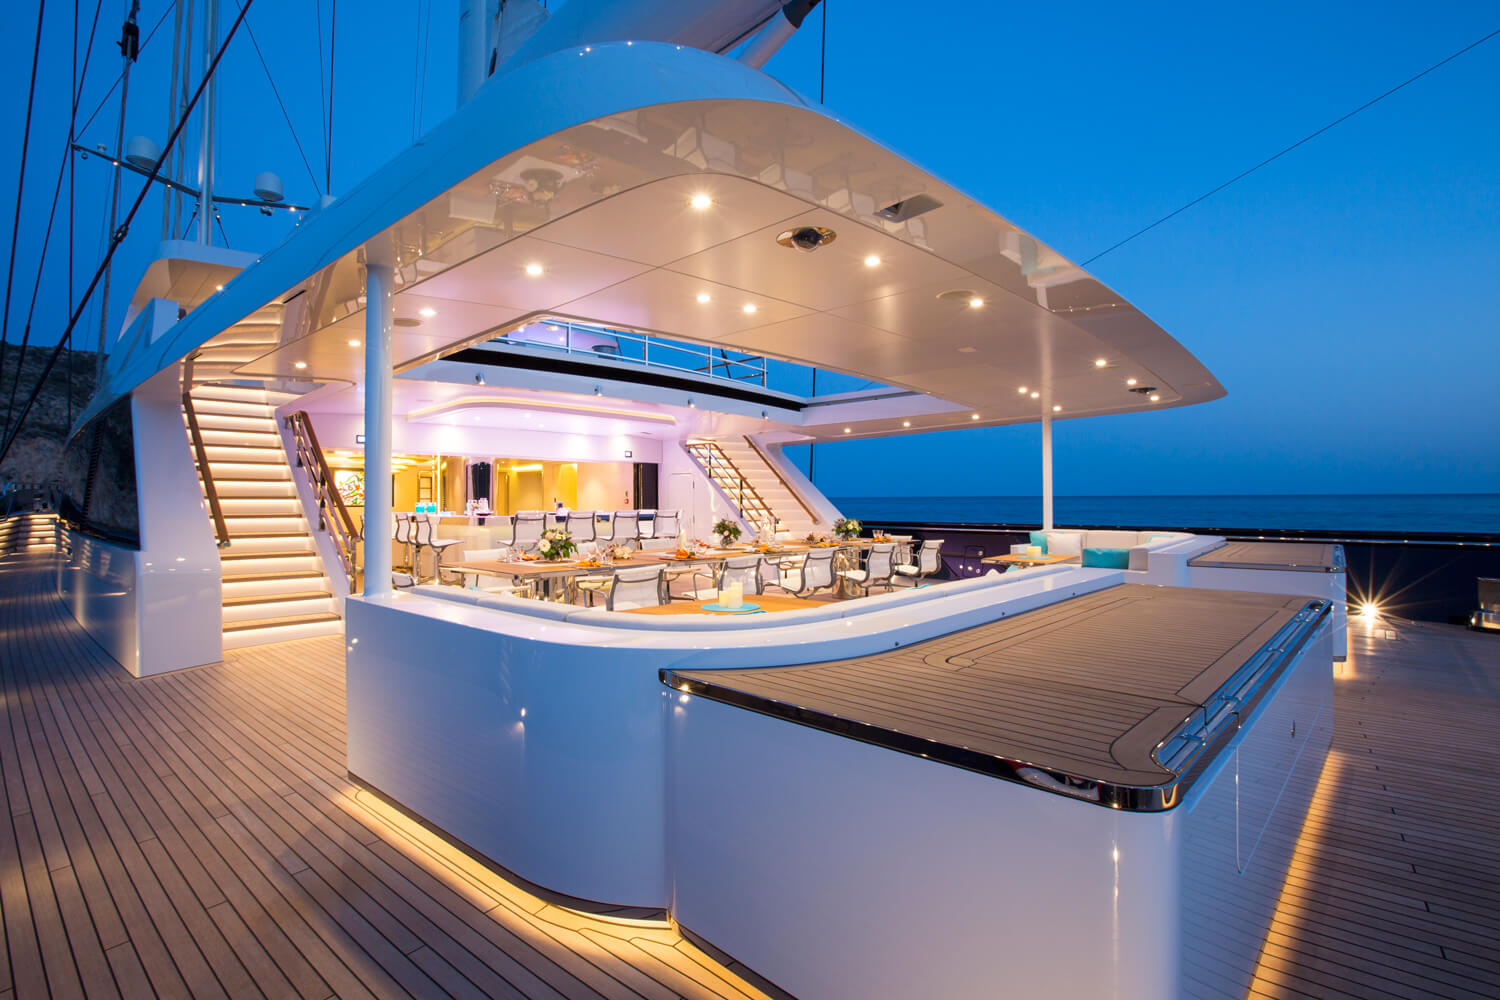 Aft Deck Entertainment Area By Night